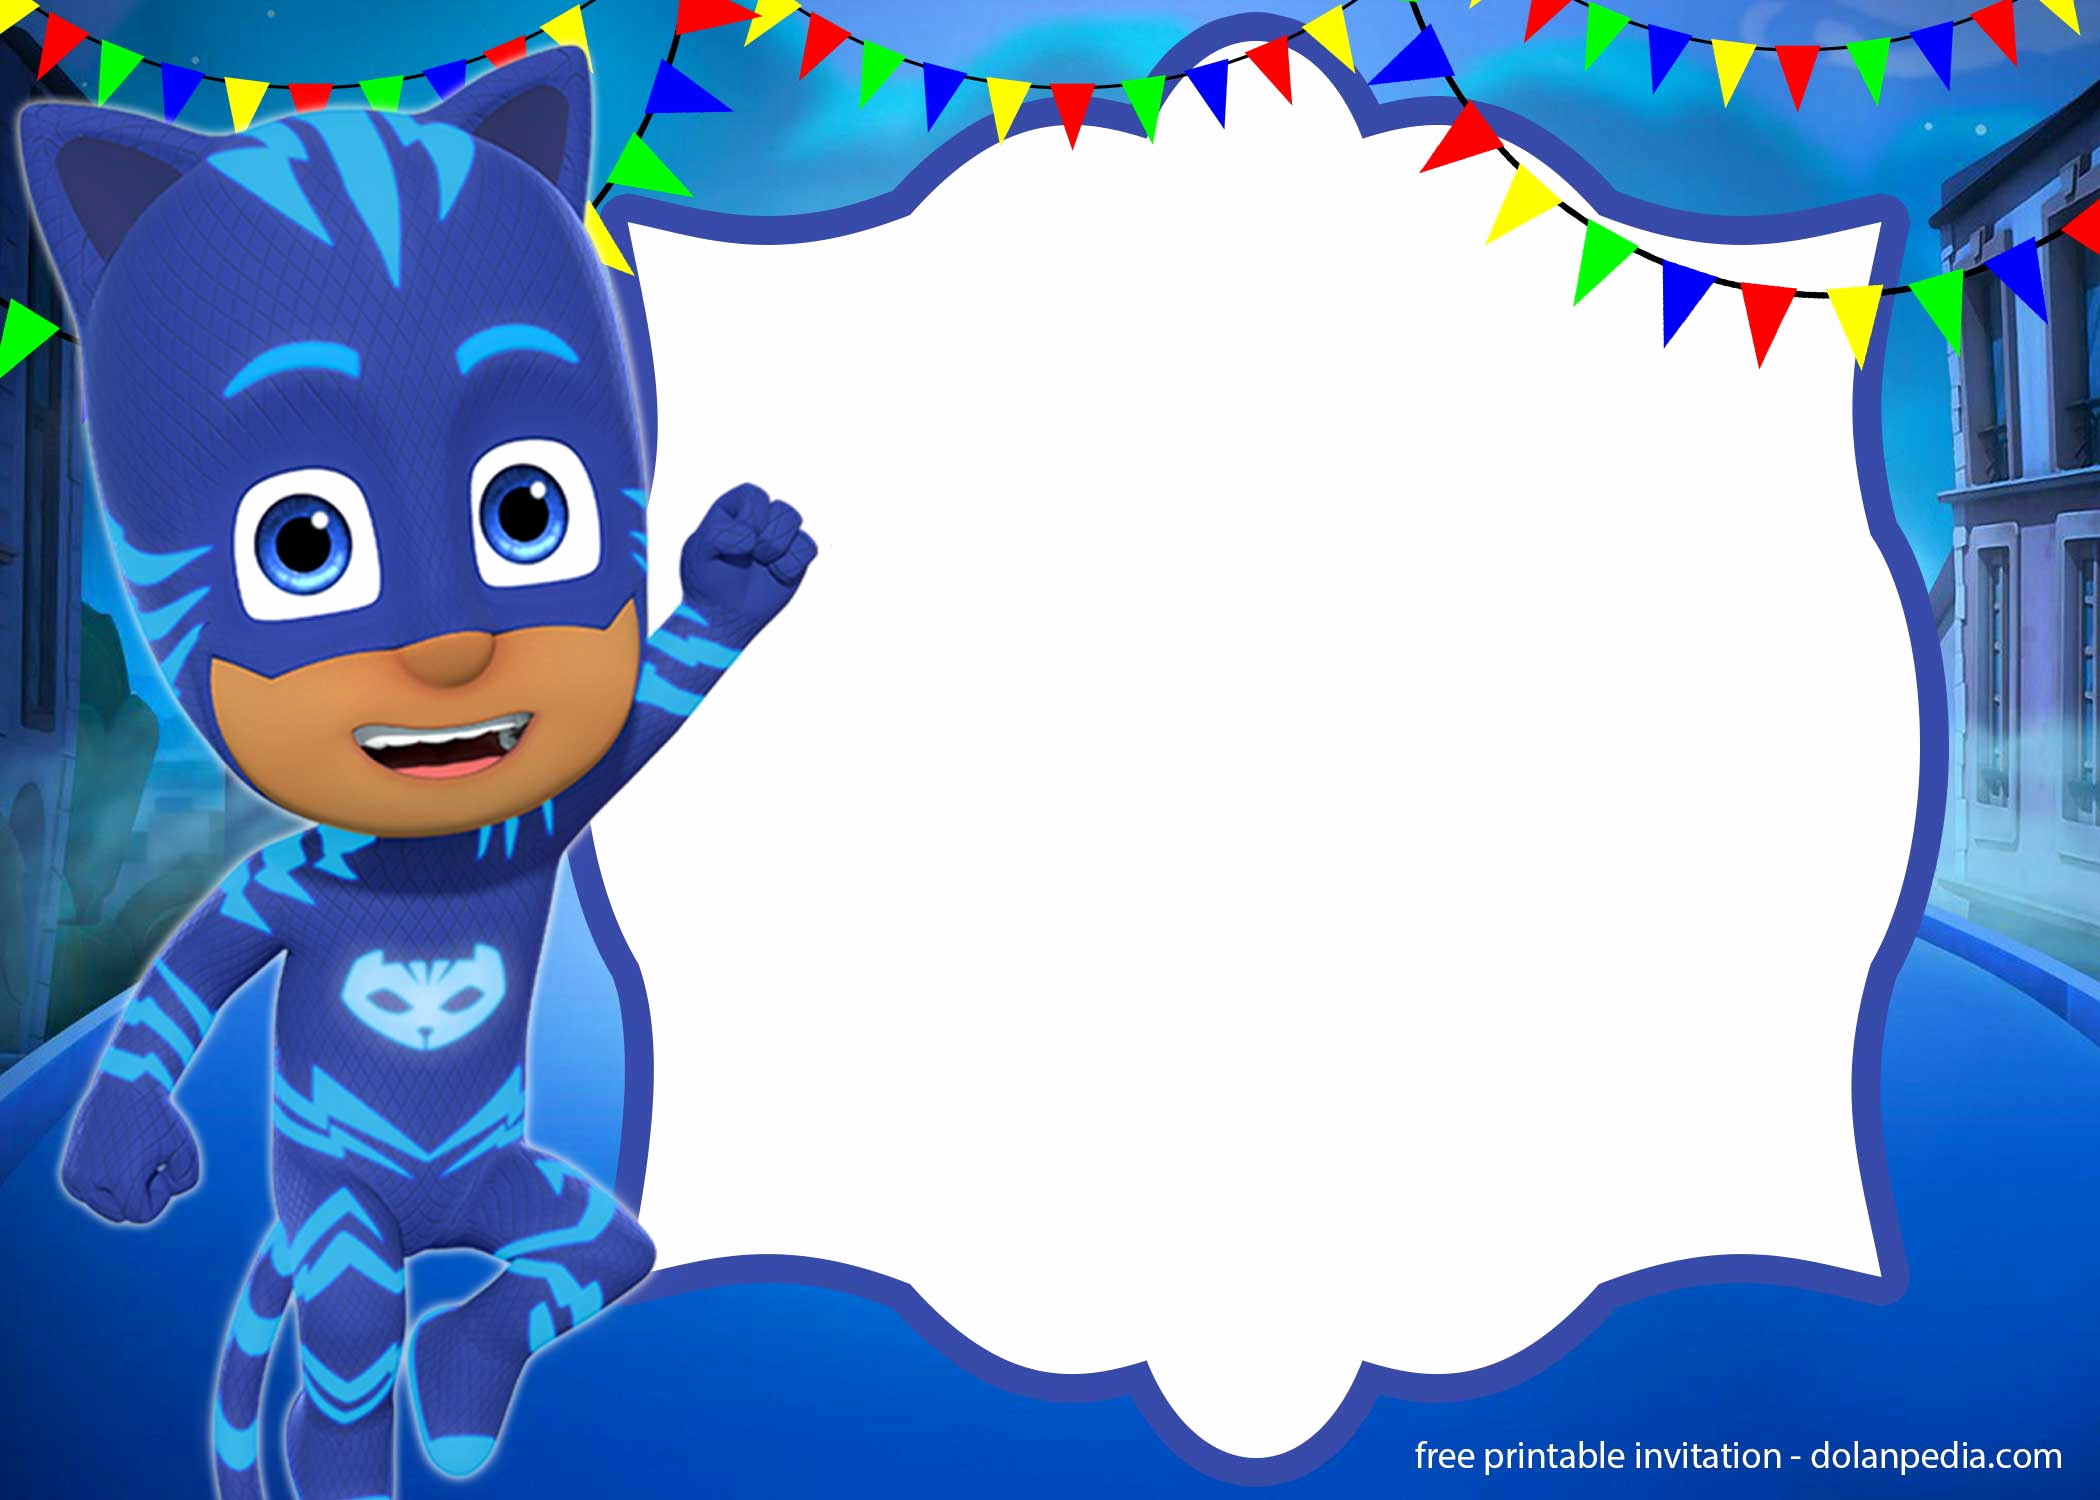 Pj Masks Invitation Template Free Inspirational 9 Free Pj Masks Birthday Invitation Templates – Updated